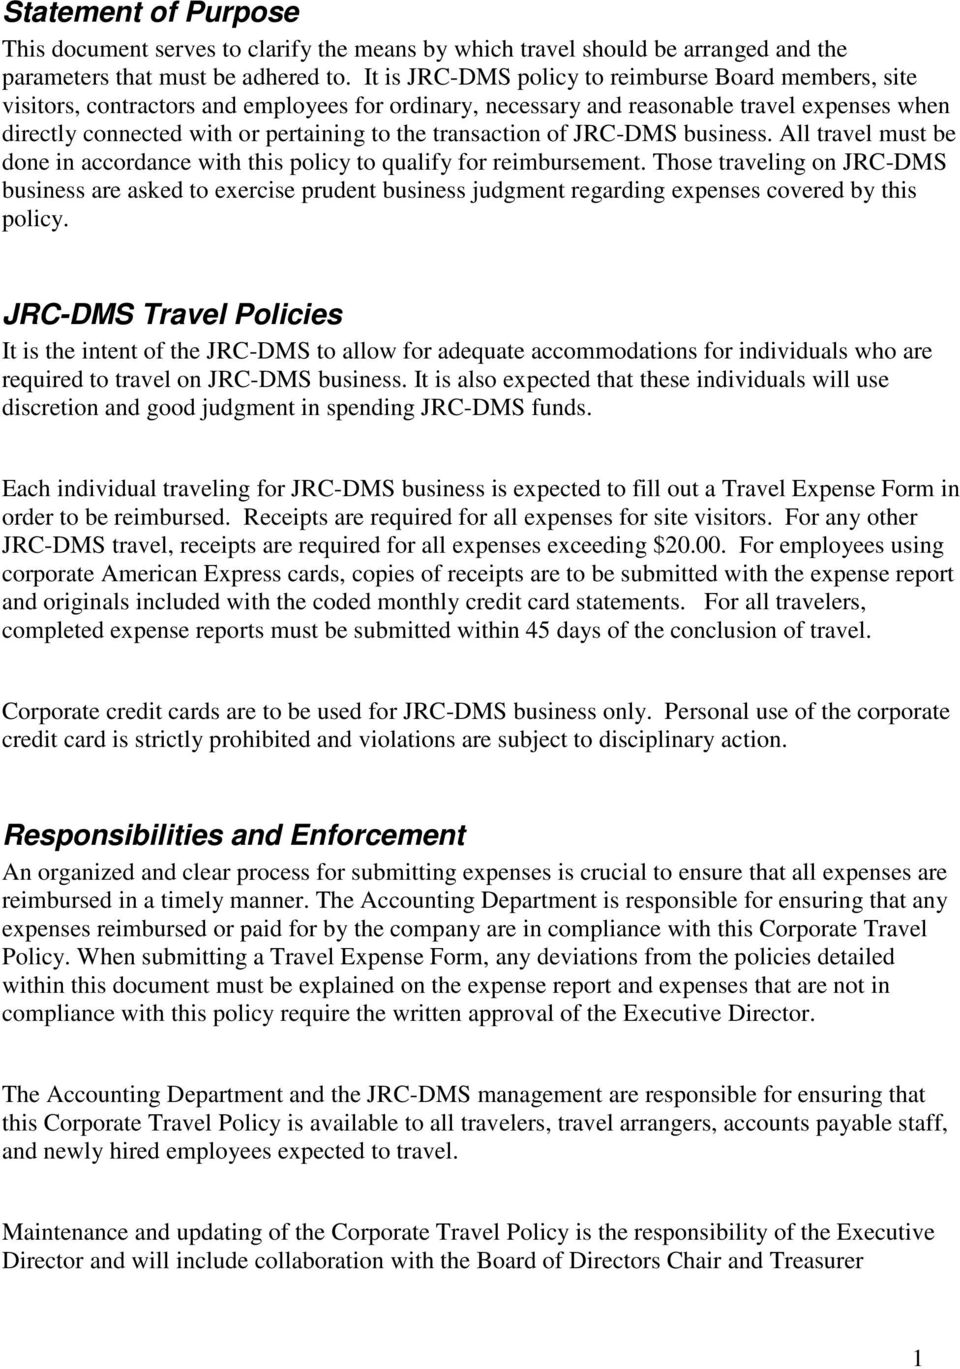 transaction of JRC-DMS business. All travel must be done in accordance with this policy to qualify for reimbursement.